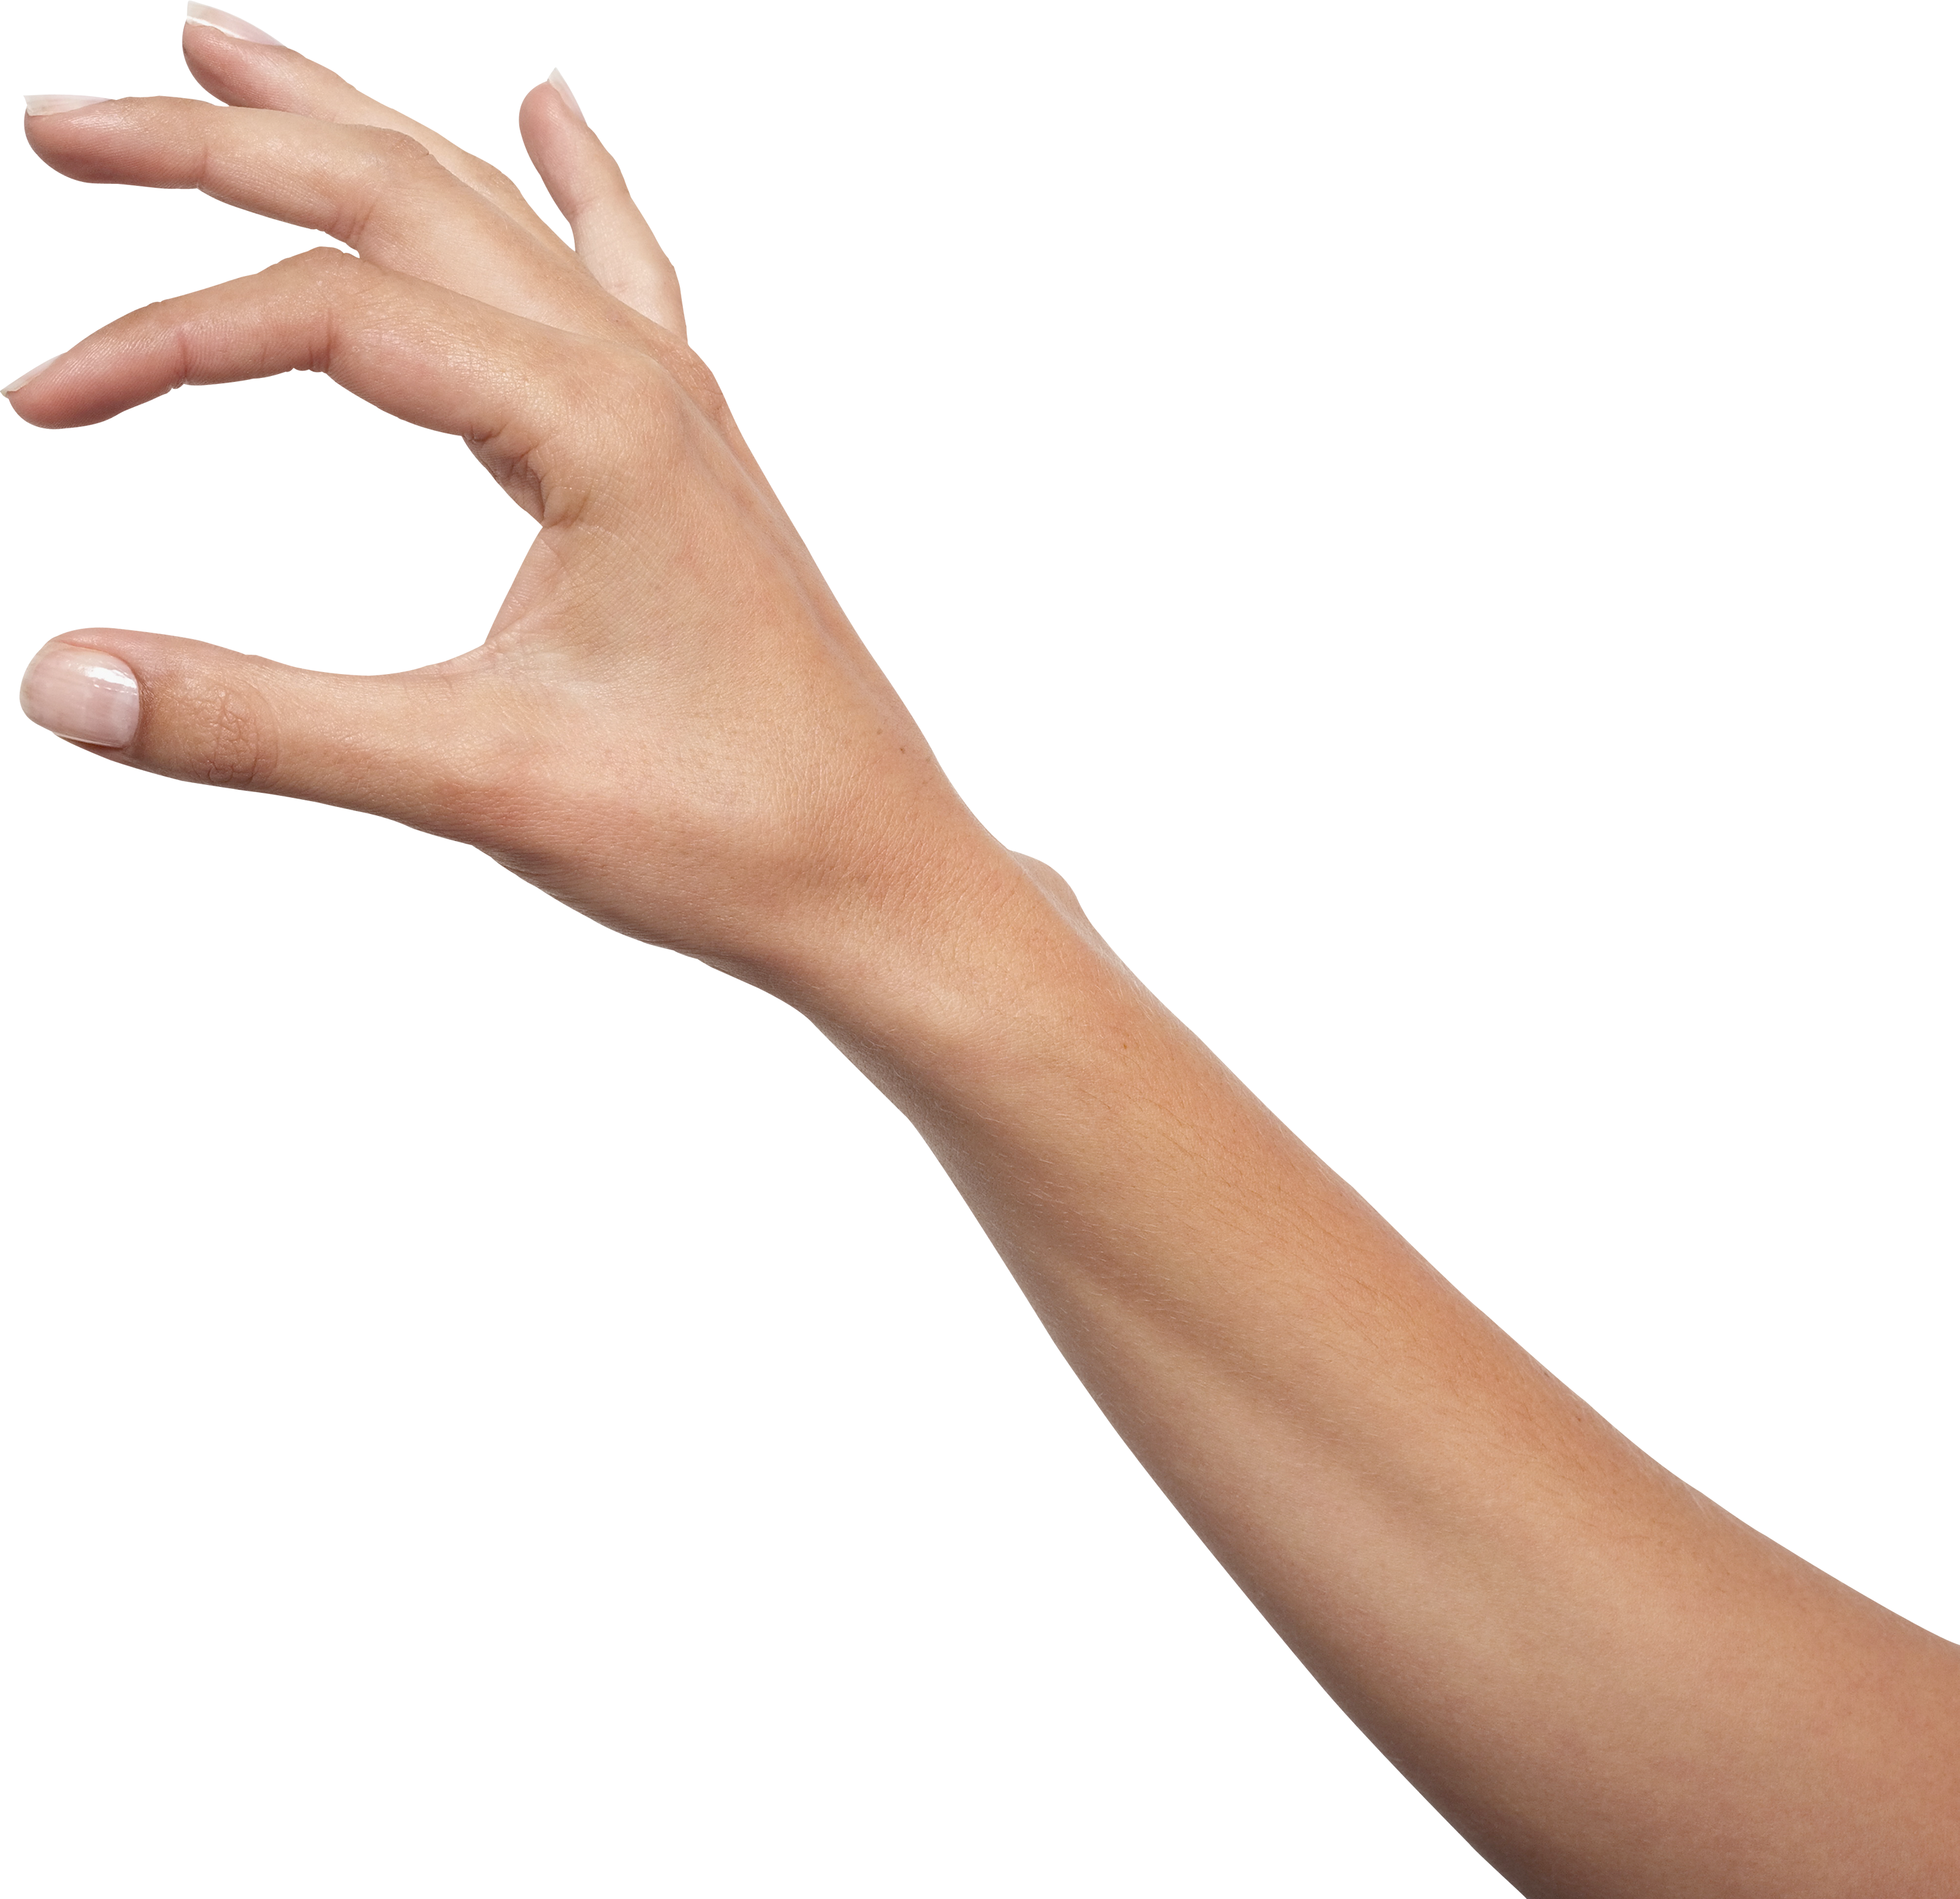 Hands Ok Png image #44732